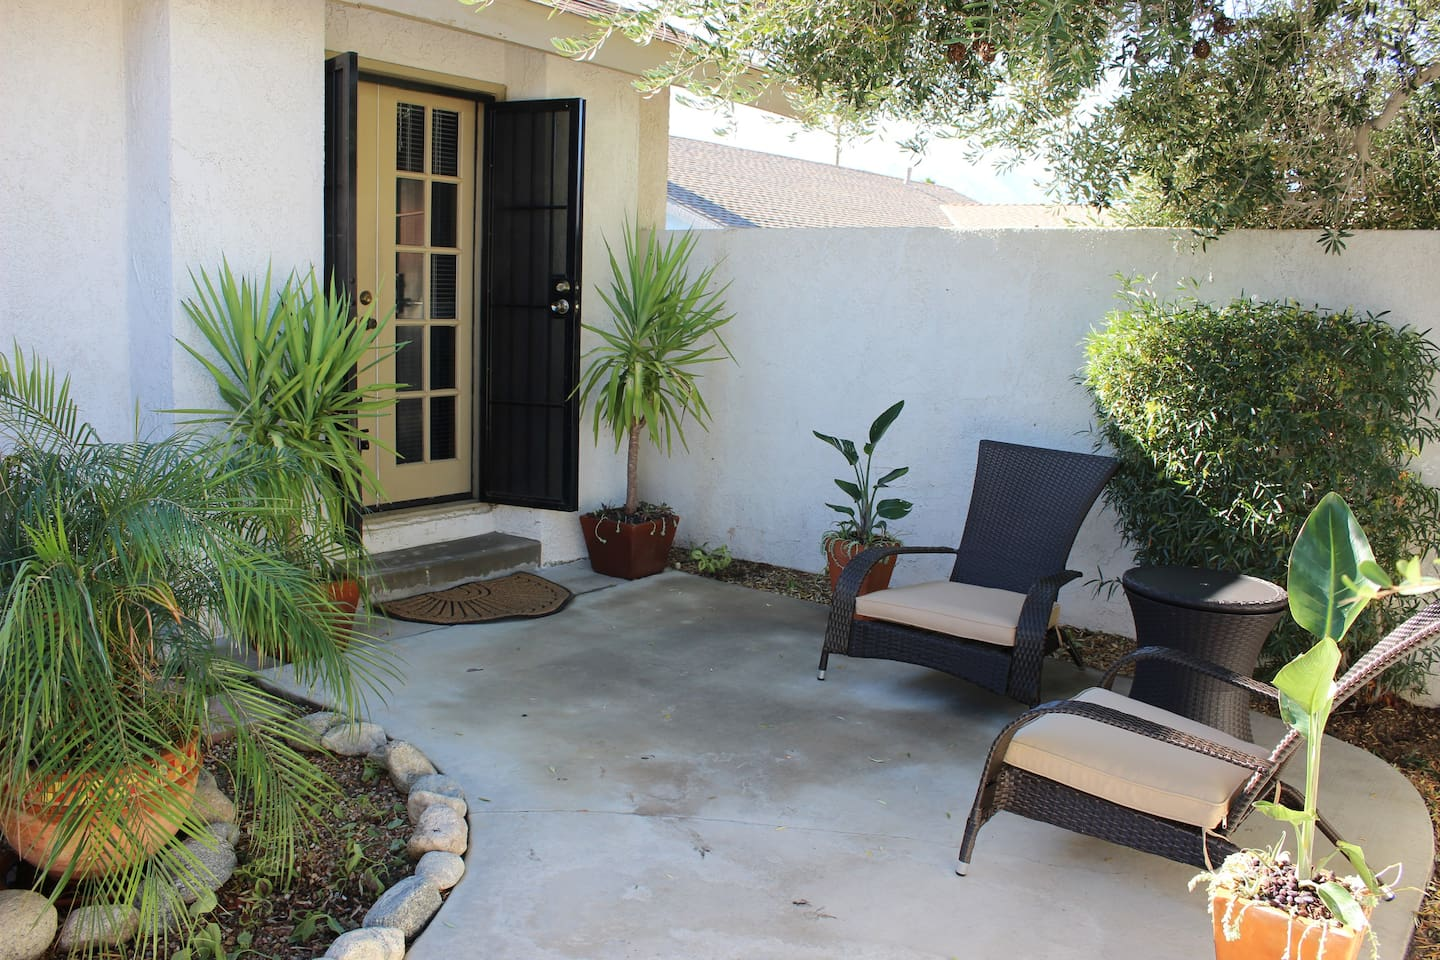 Private Cozy Hideaway Entry Courtyard.